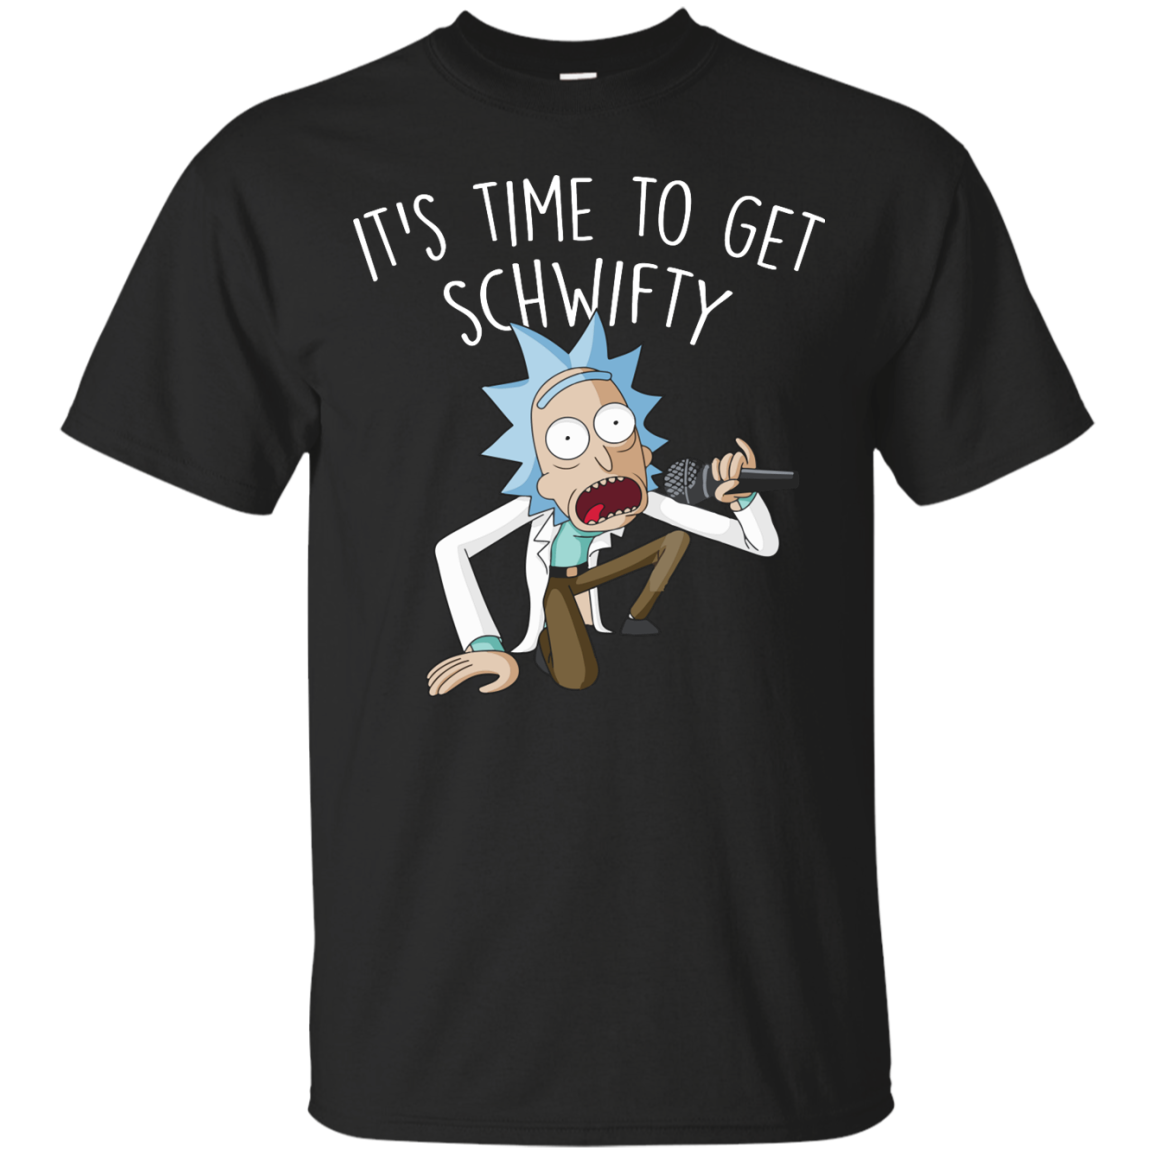 Rick and Morty It's Time to Get Schwifty T-Shirt, Hoodies